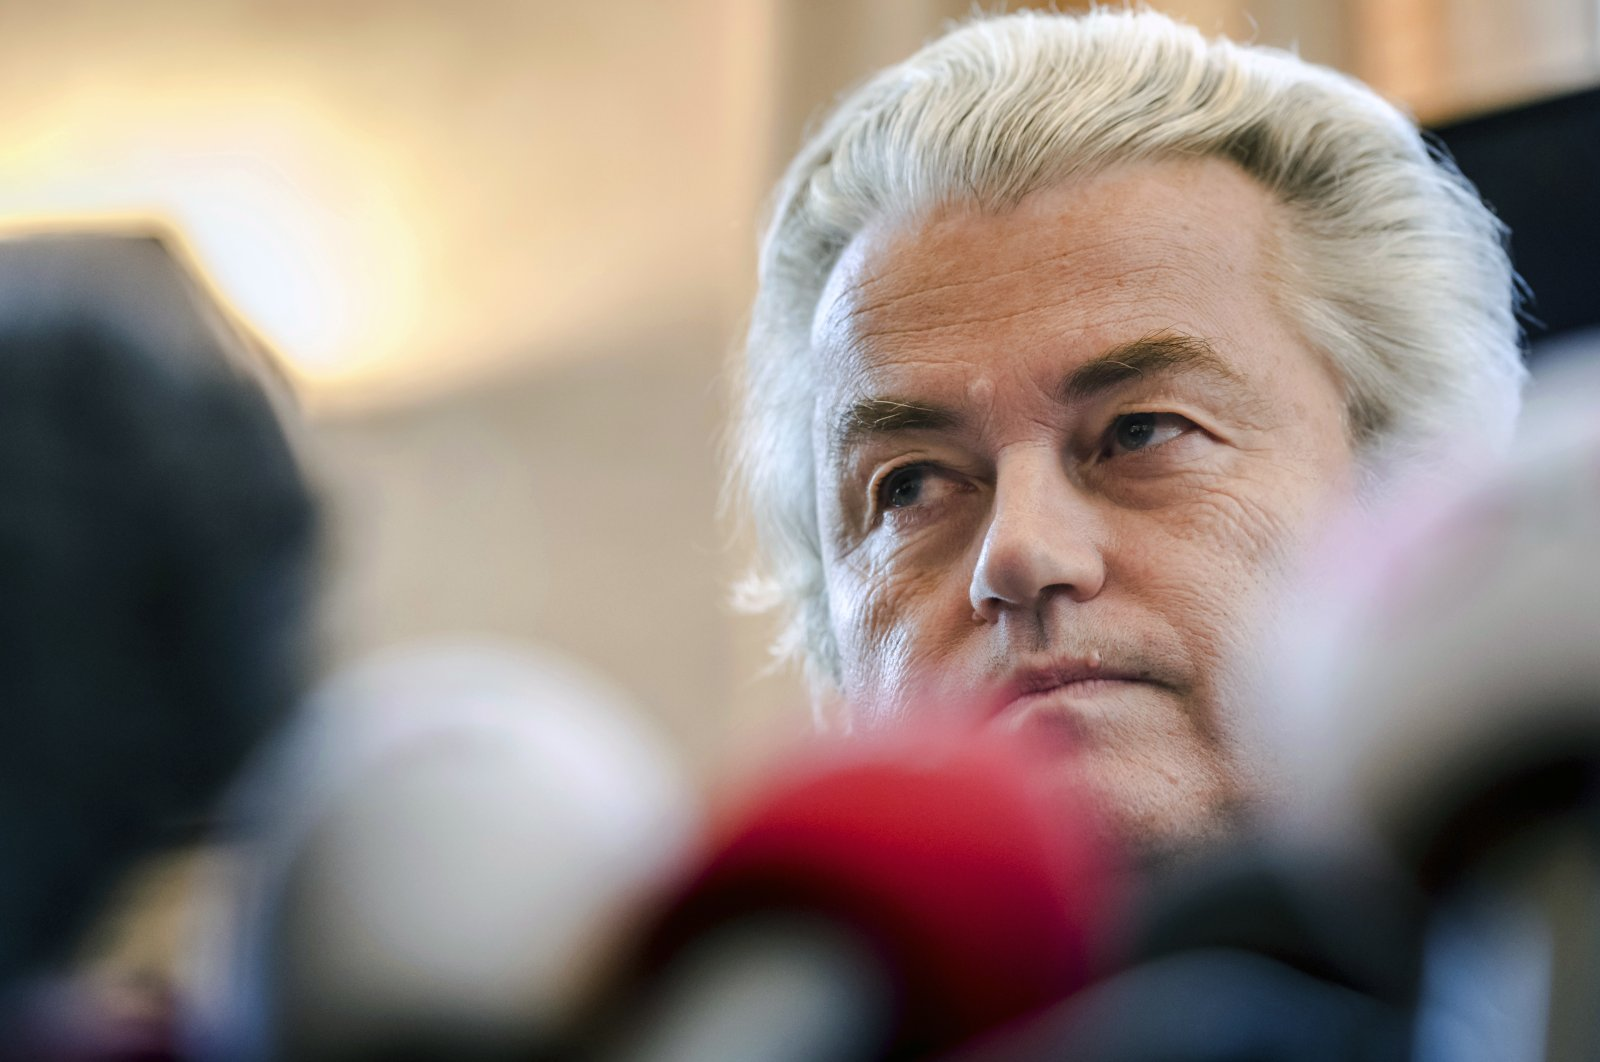 Dutch far-right leader Geert Wilders addresses the media at the Belgian Federal Parliament in Brussels, Nov. 3, 2017. (AP File Photo)